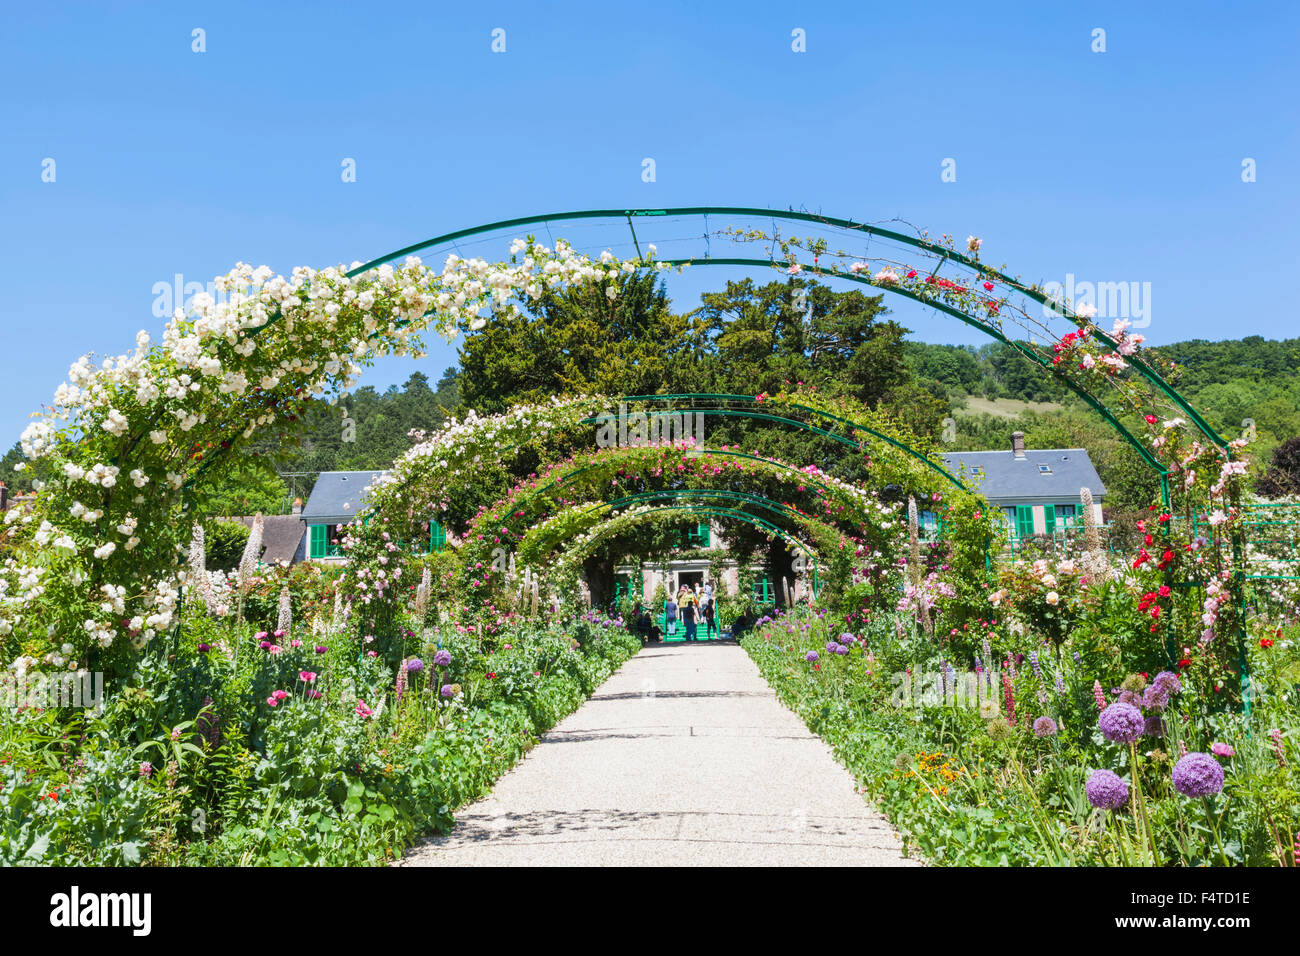 France, Normandy, Giverny, Monet's House and Garden - Stock Image